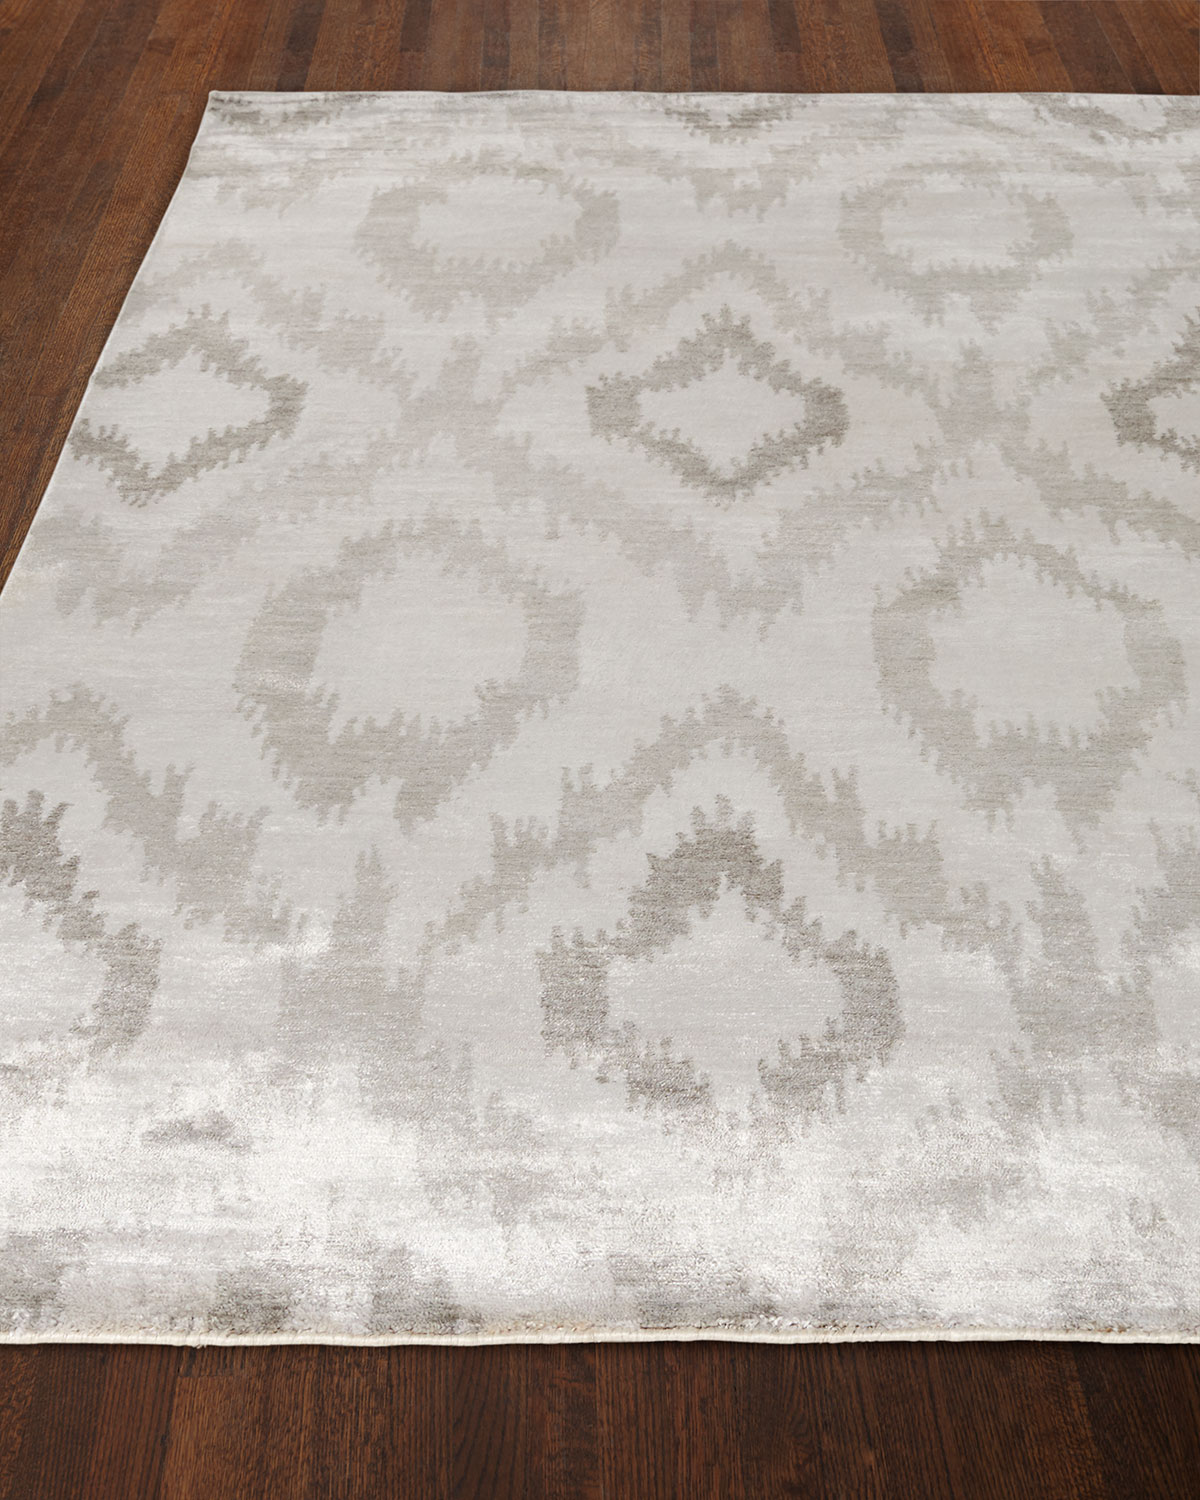 Exquisite Rugs Mesa Hand-Knotted Silver Rug, 12' x 15'